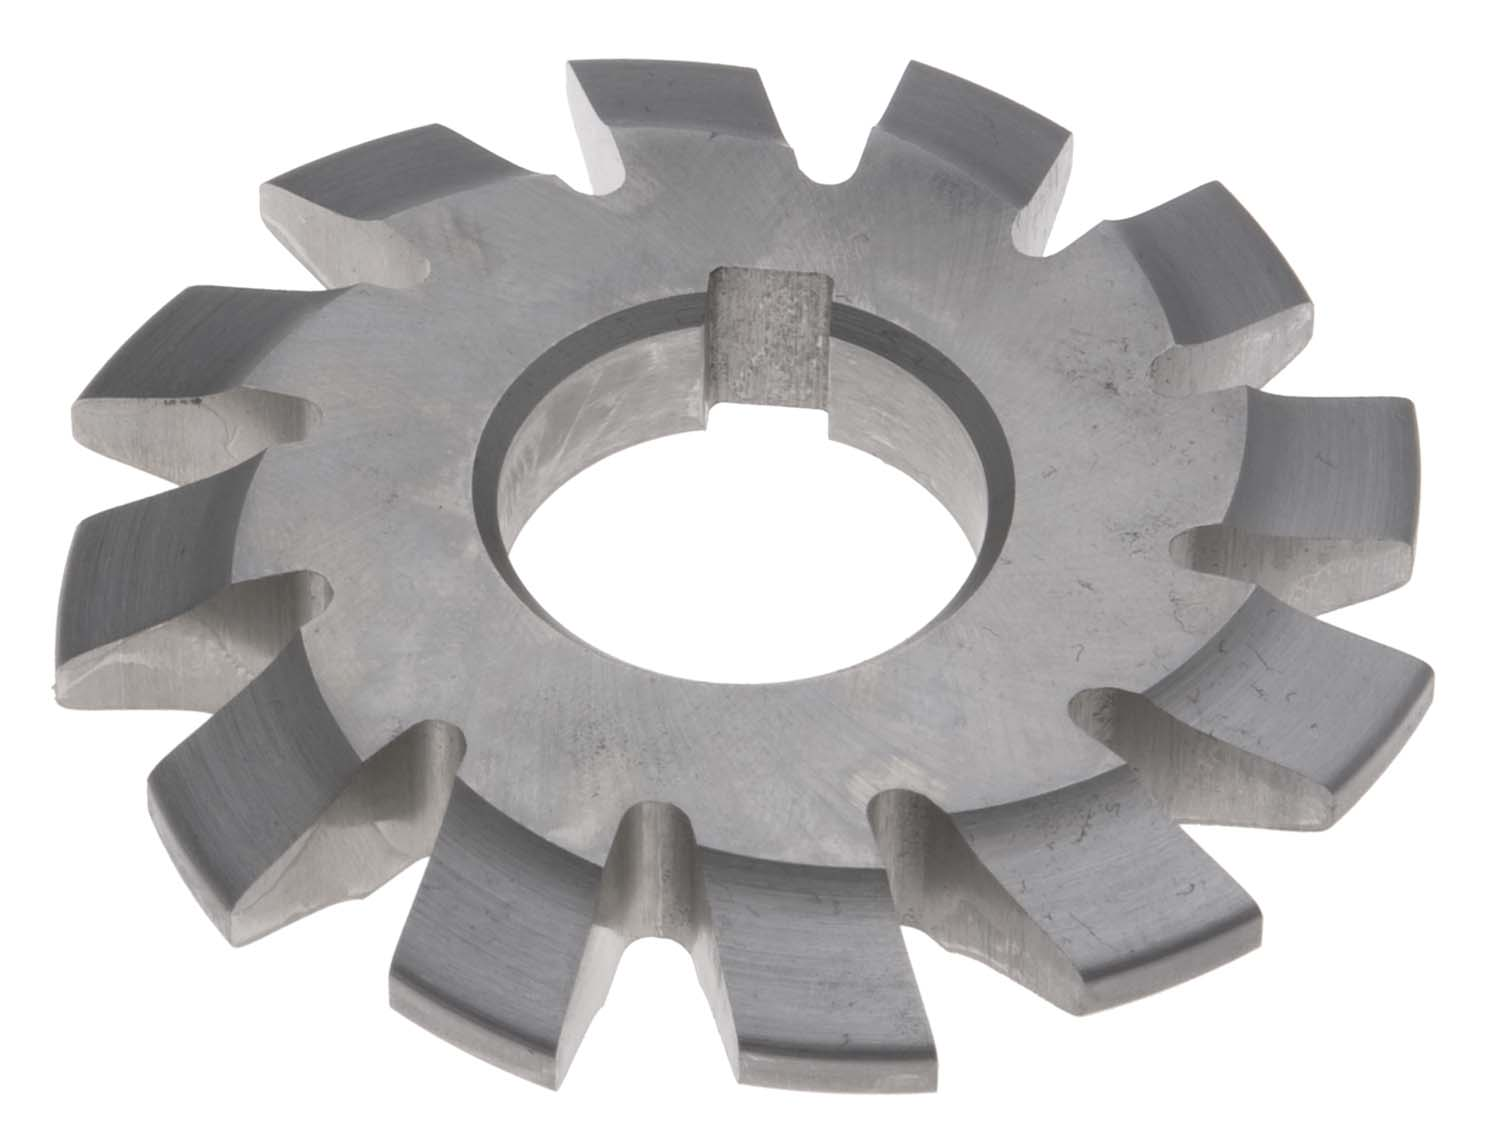 8 Diametral Pitch # 4 Involute Gear Cutter - 1 Inch ID - 14-1/2 Degree Pressure Angle